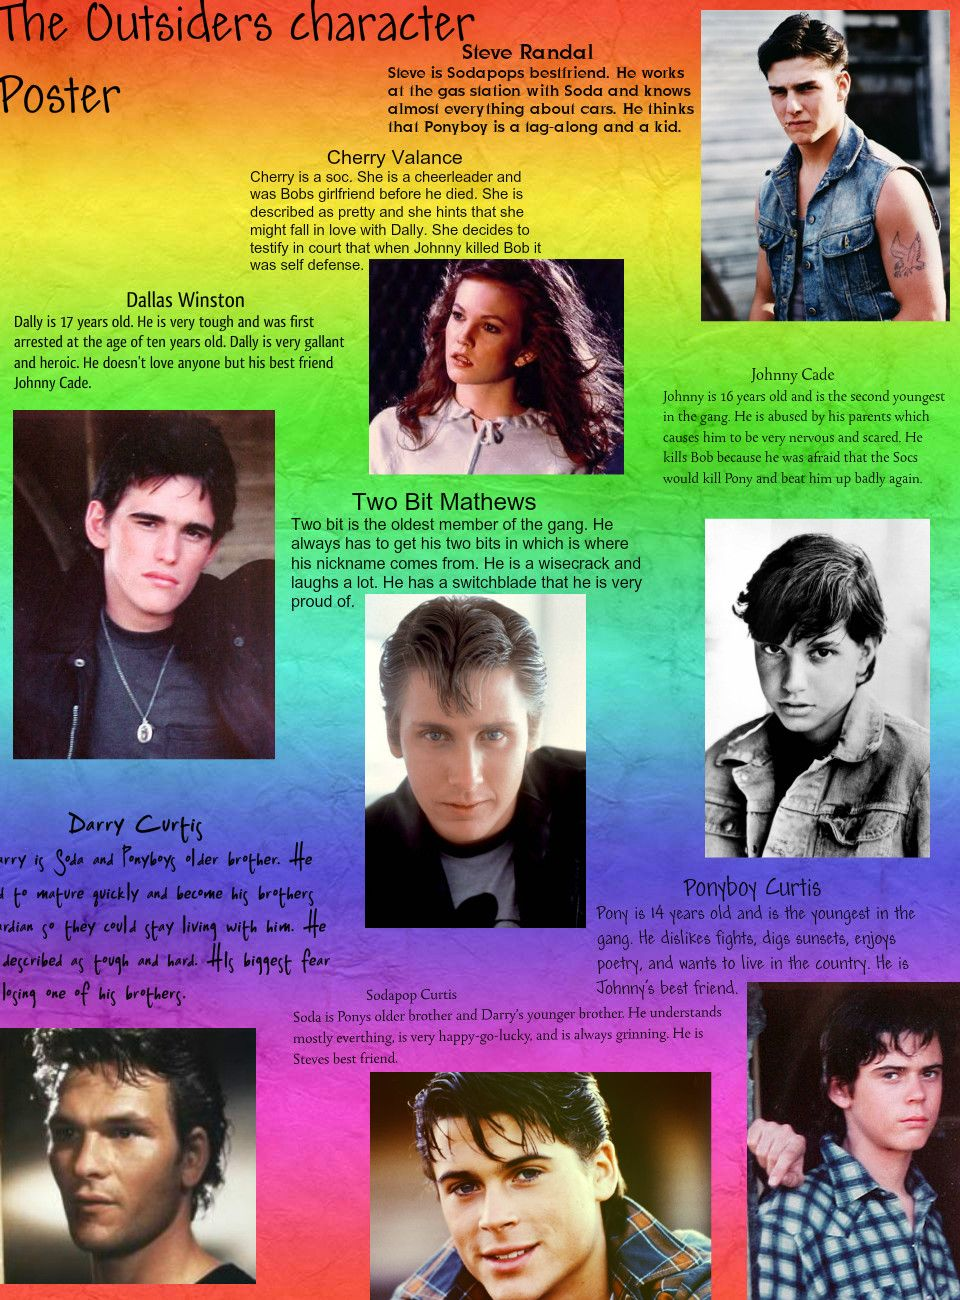 The outsiders | The outsiders character poster | Publish